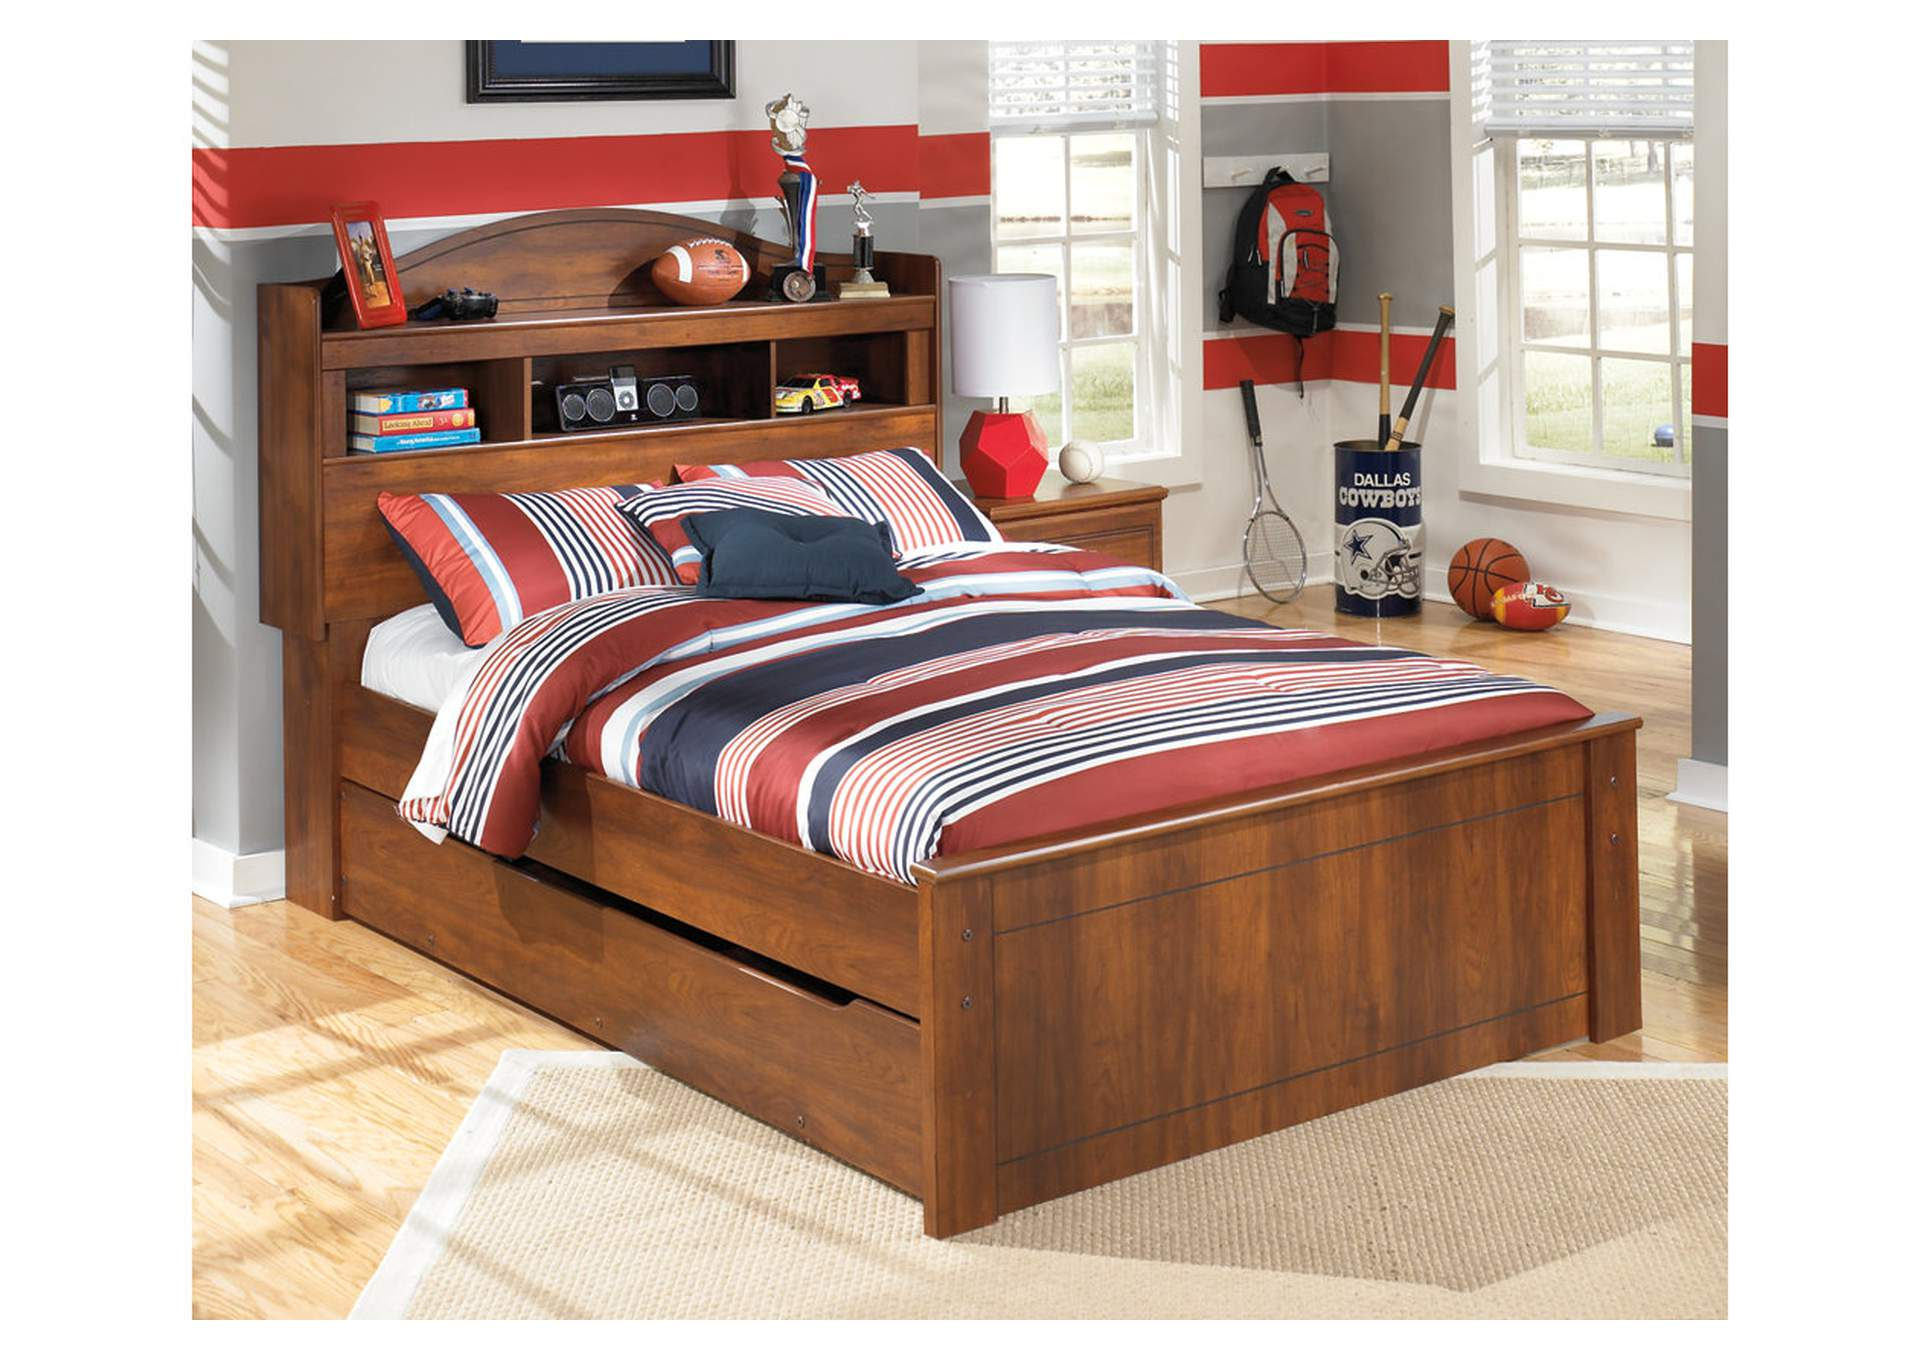 W.A Akins u0026 Sons Barchan Full Bookcase Bed w/ Trundle